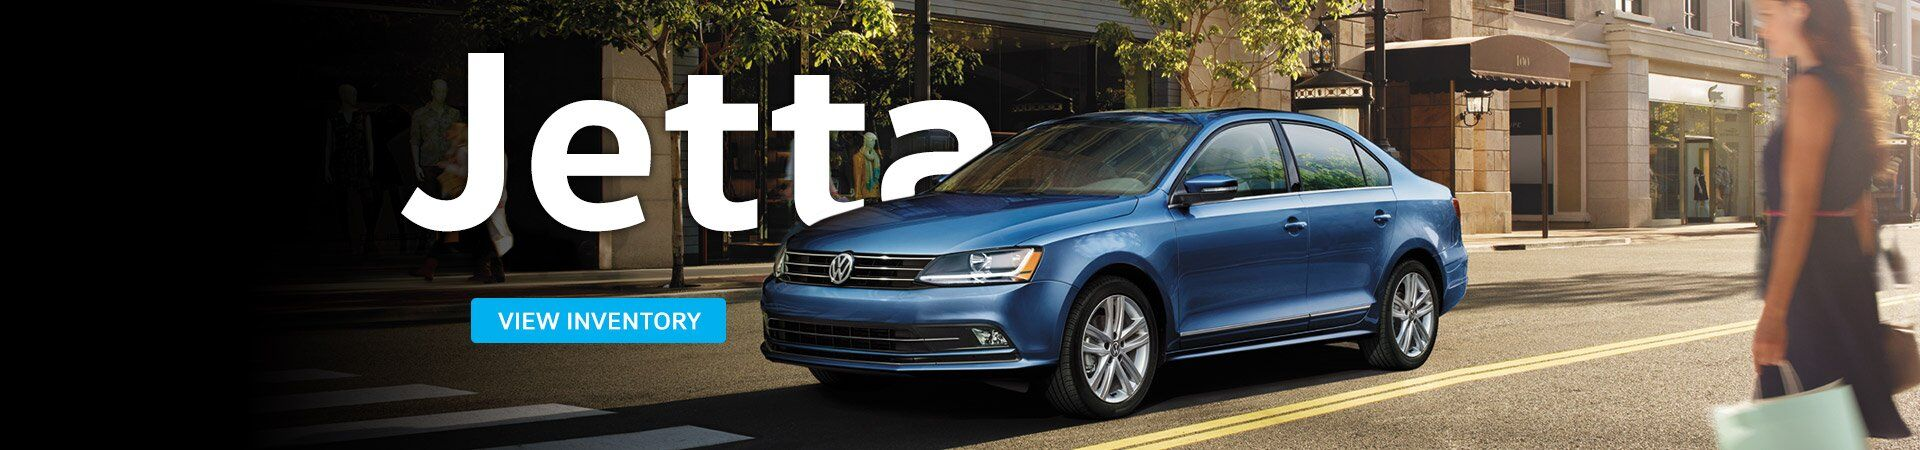 New VW Jetta near Elgin